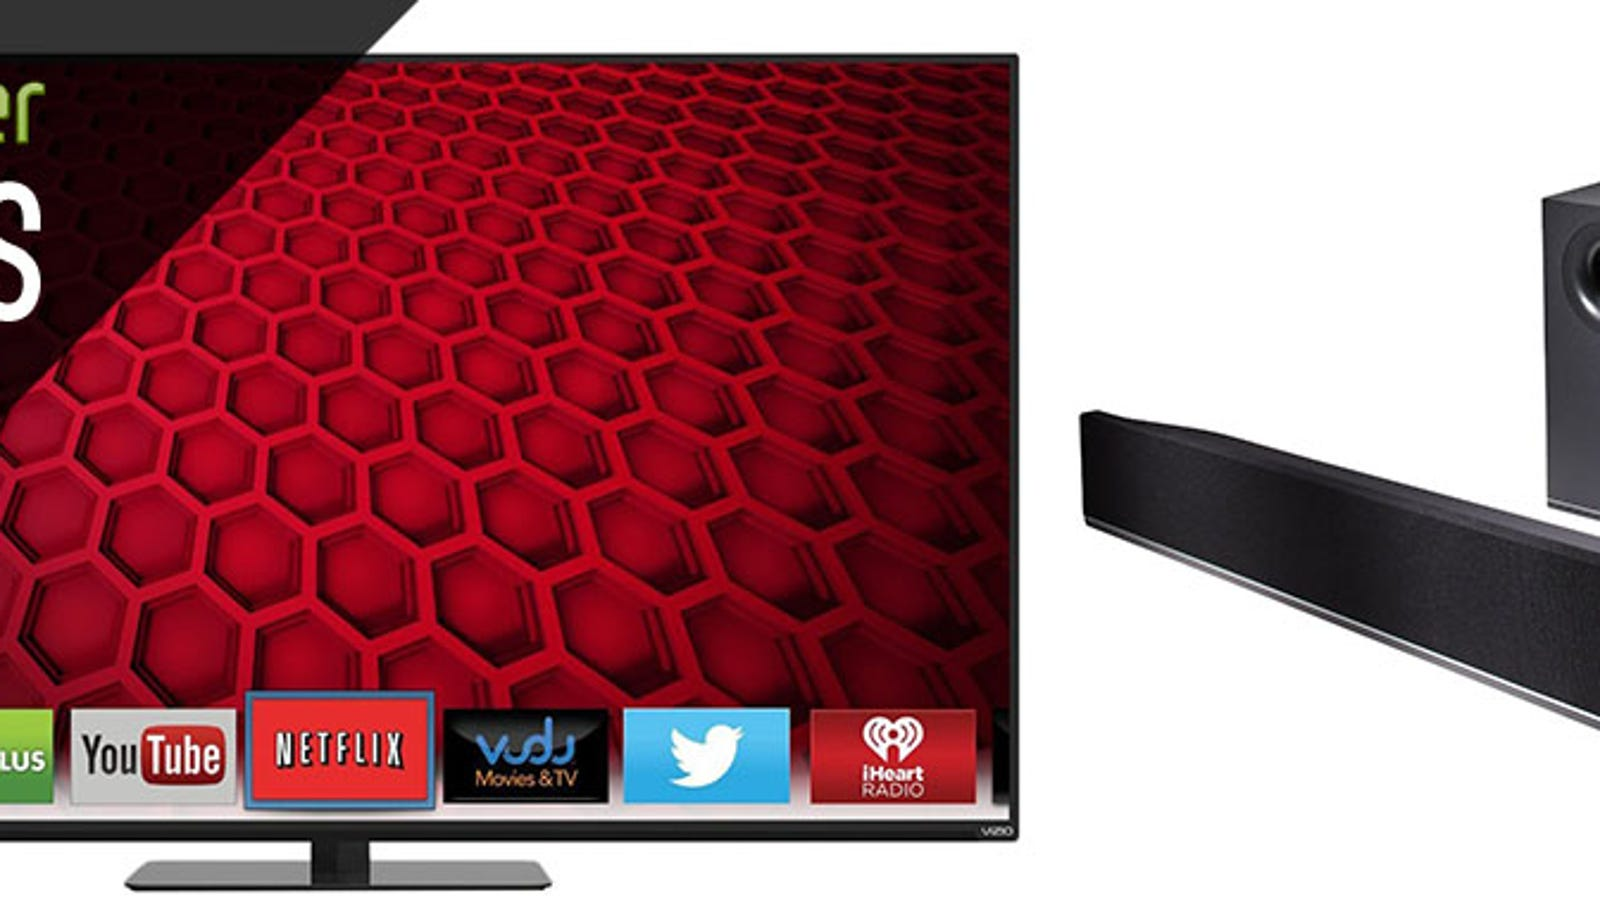 Prime-Exclusive Home Theater Discounts, Telescopes, and More Deals